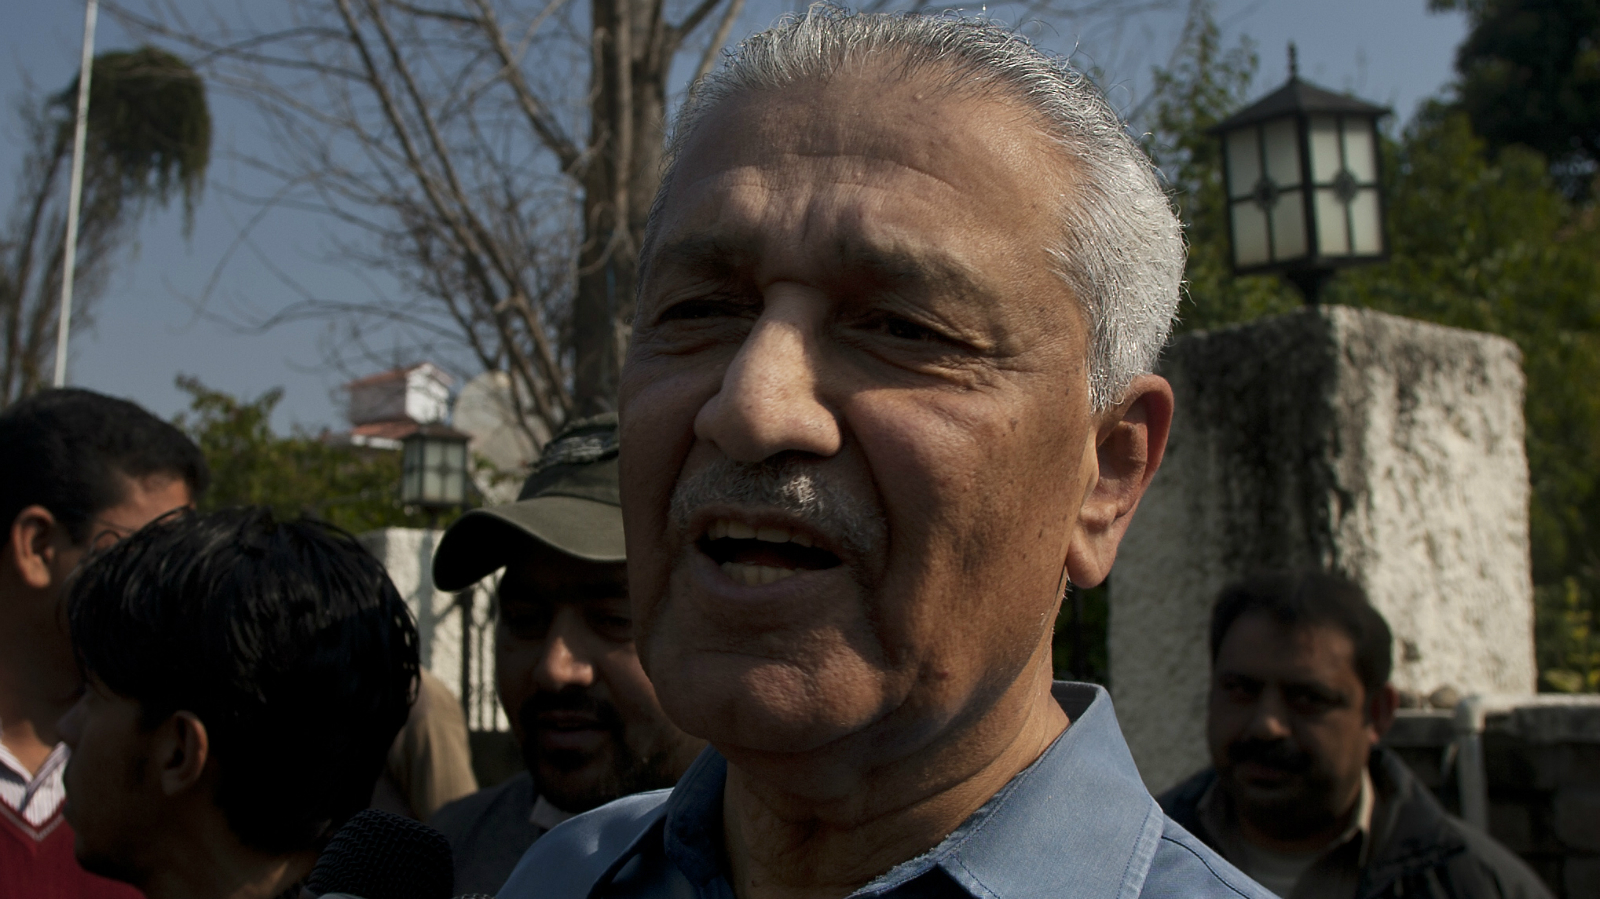 In this photo taken on Feb, 6, 2009, Pakistan's nuclear scientist Abdul Qadeer Khan speaks to the media outside his residence in Islamabad, Pakistan. The architect of Pakistan's nuclear program scored another court victory Friday, May 28, 2010 in his quest to ease restrictions on his movement, though it appears he will remain subject to government surveillance. Khan was detained in December 2003, and in early 2004 he admitted on television that he operated a network that spread nuclear weapons technology to North Korea, Libya and Iran.